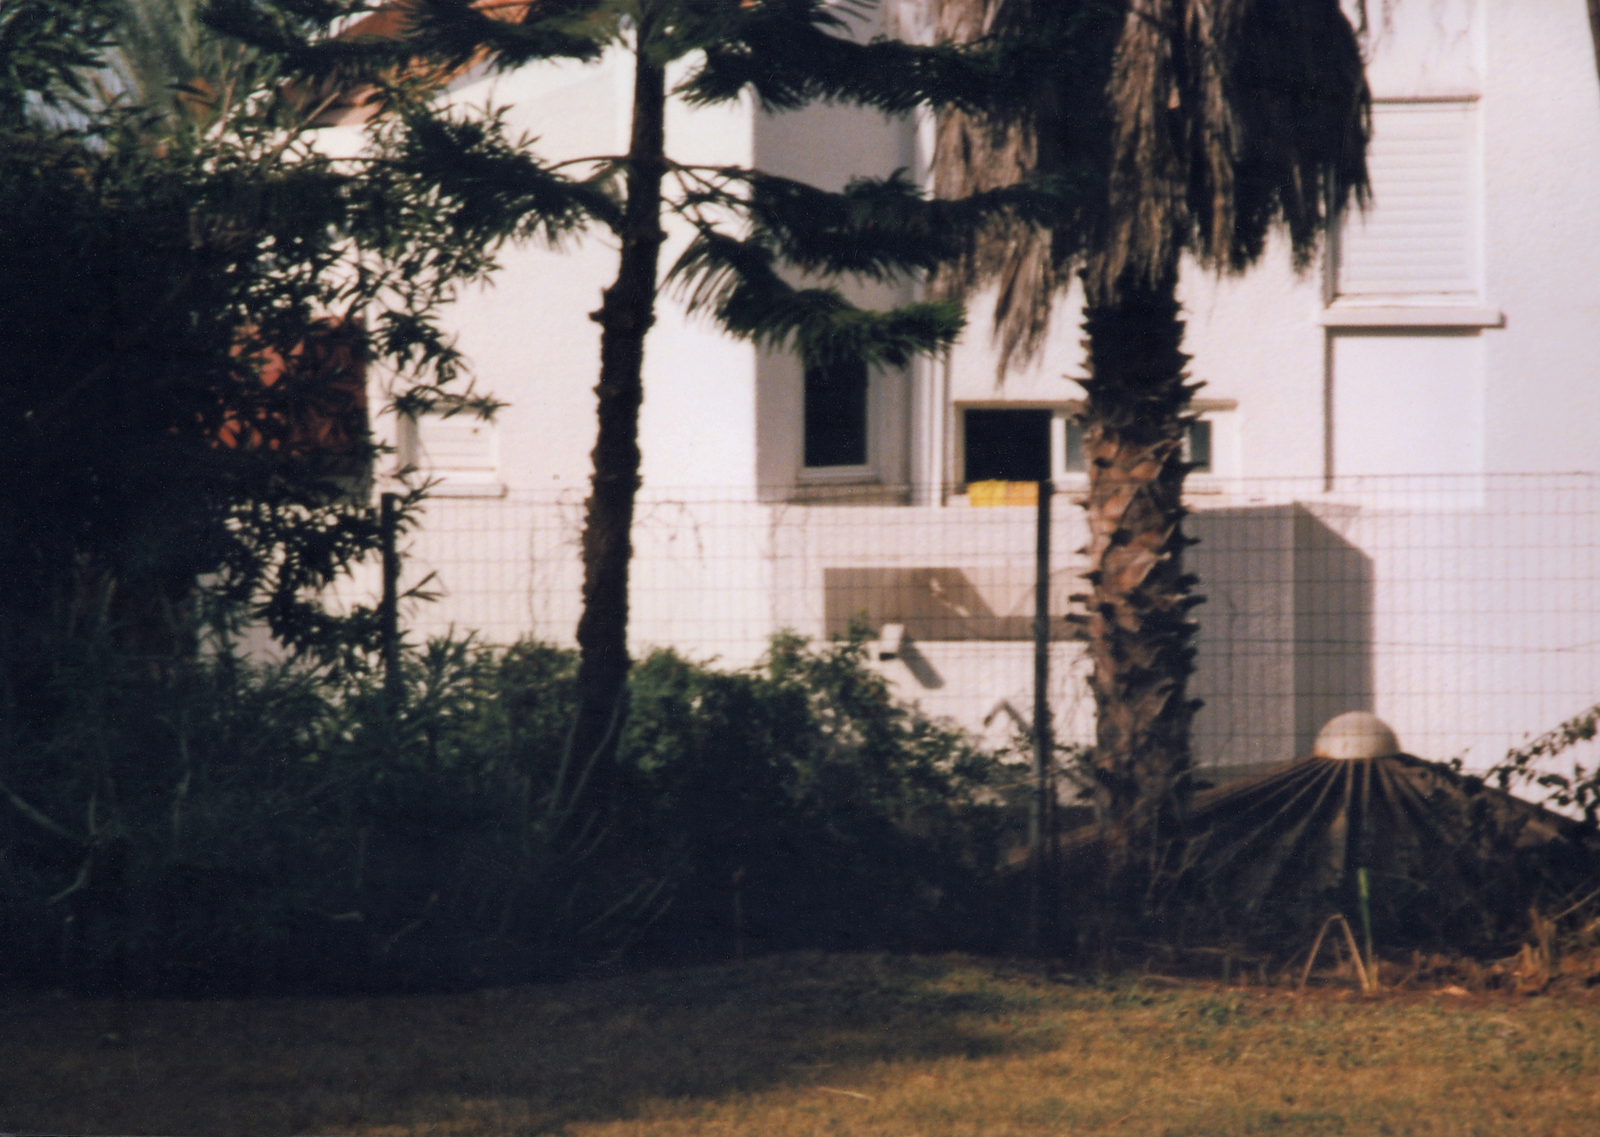 Tel Aviv - Deputy Chief of Mission Residence - 1996